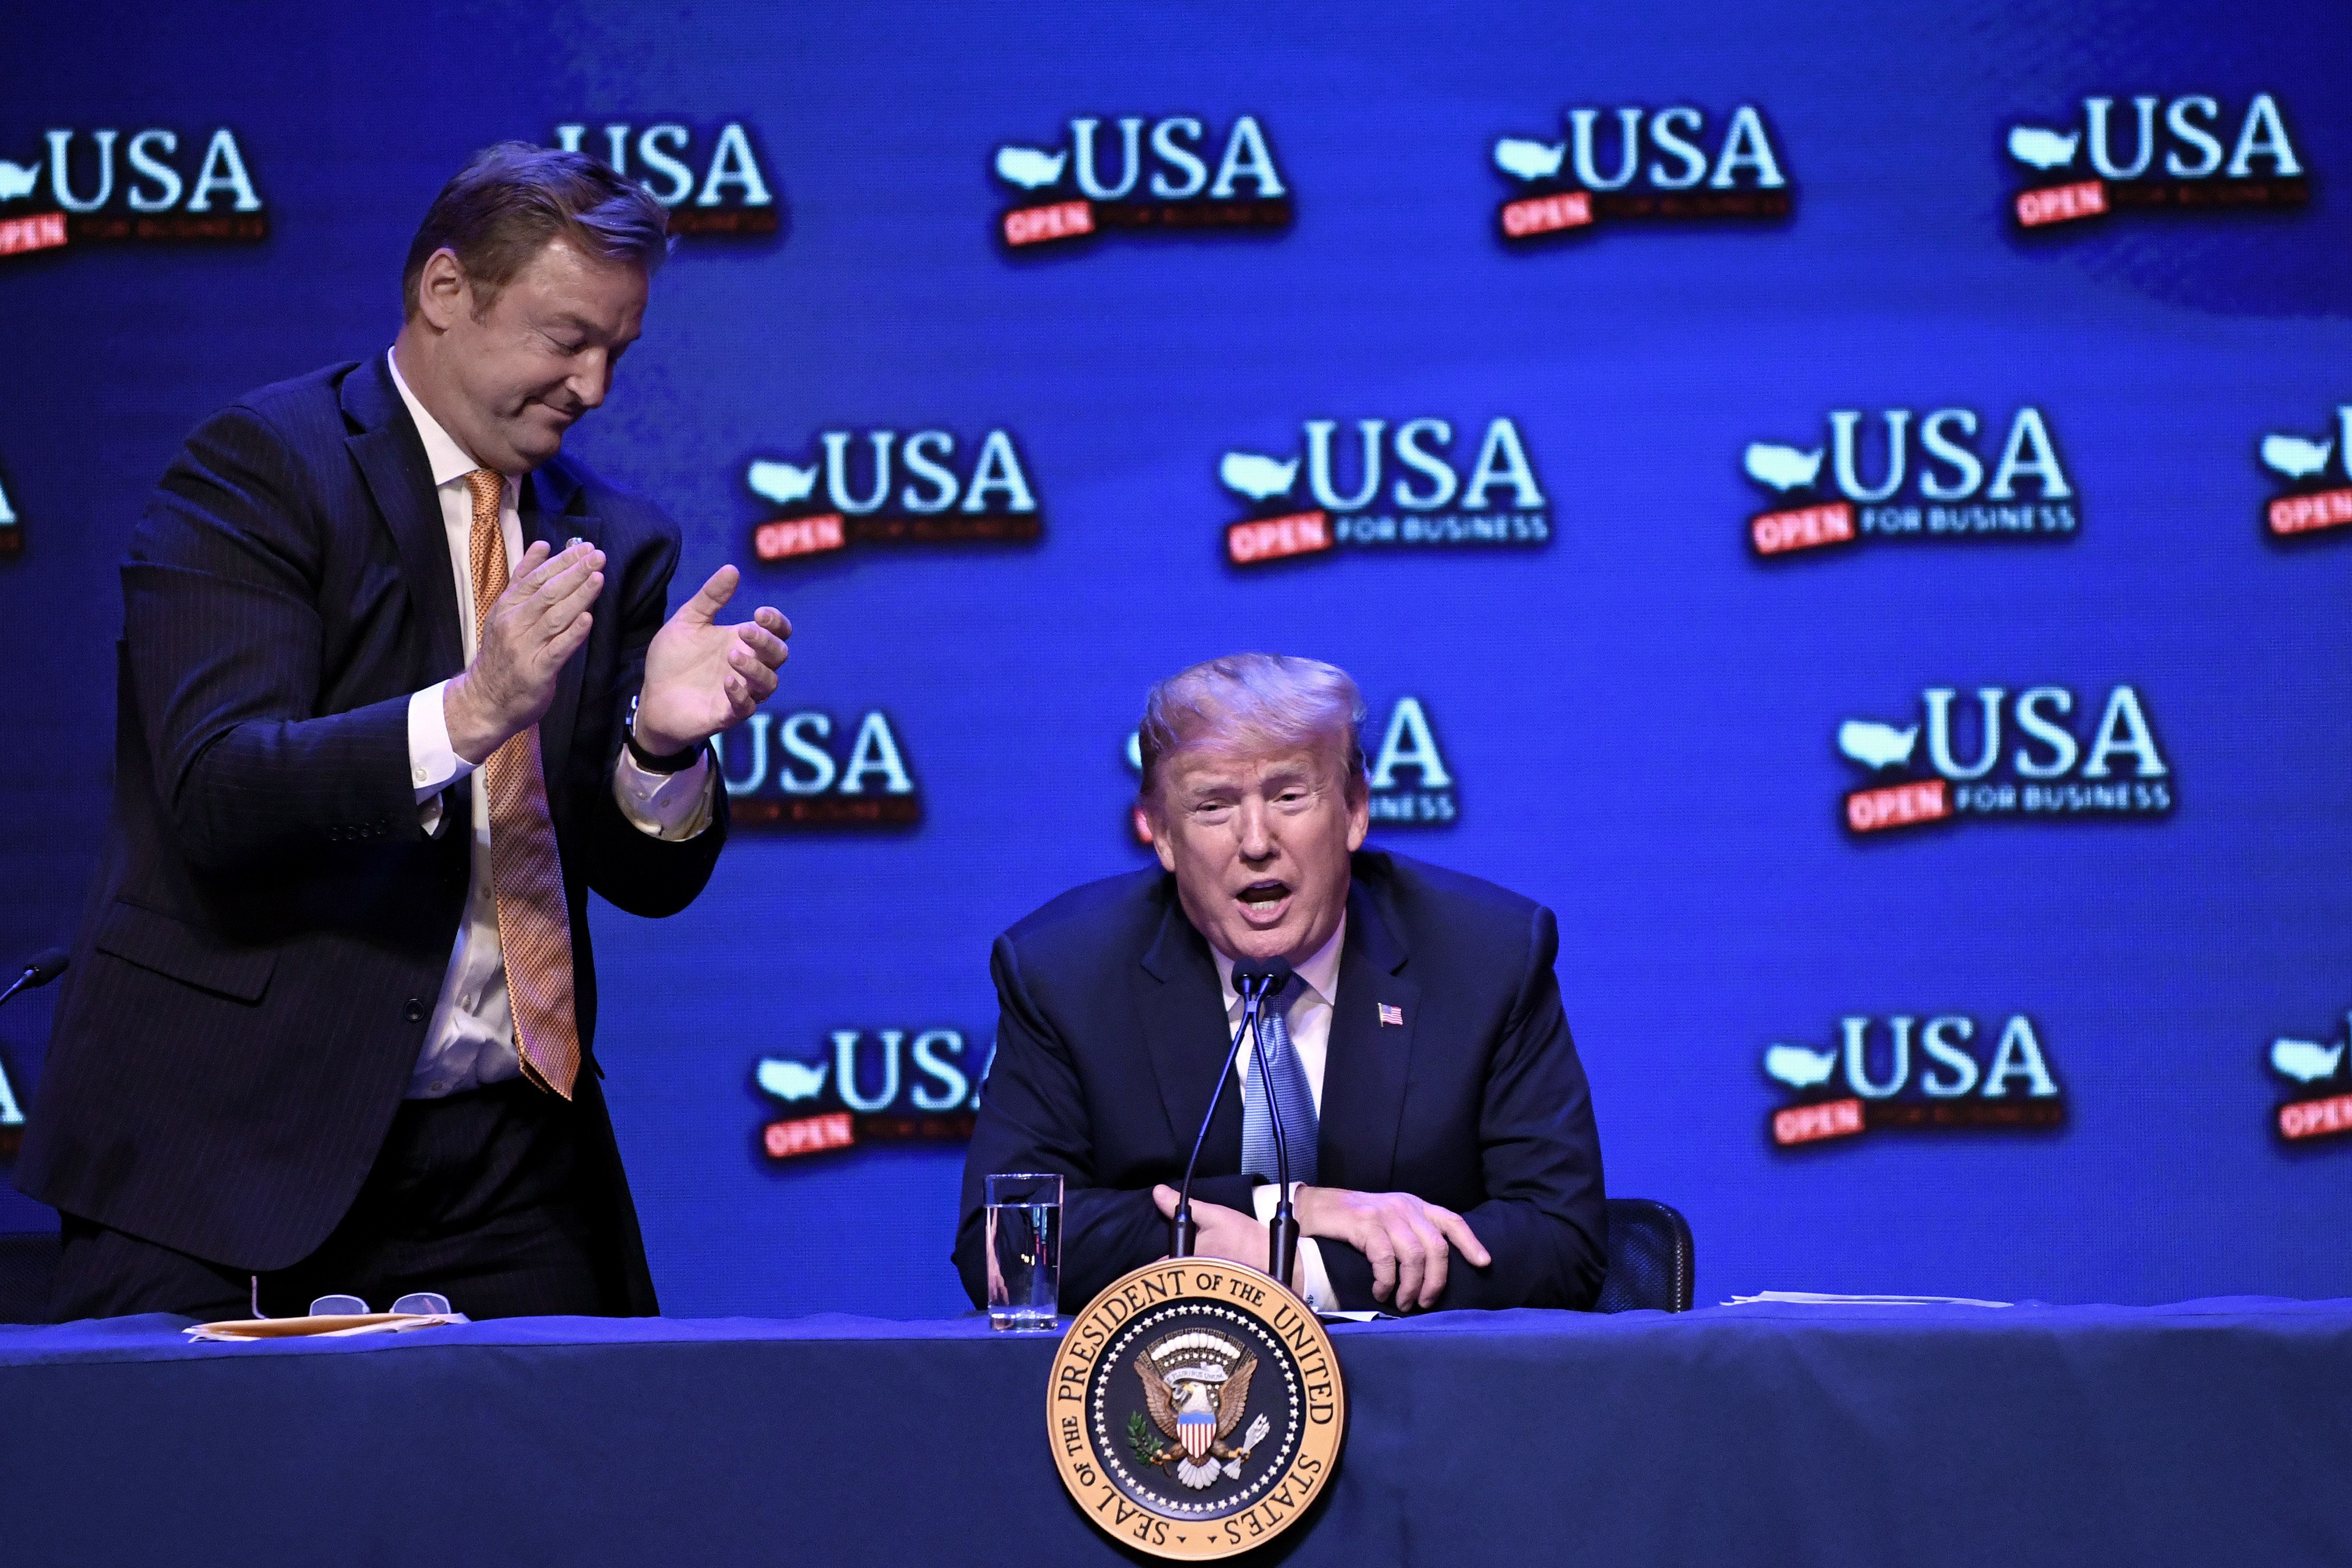 US President Donald Trump speaks as Nevada Senator Dean Heller (L) applauds during a roundtable discussion on tax reform at the South Point Hotel Casino and Spa in Las Vegas, Nevada, on June 23, 2018. (Photo by Olivier Douliery / AFP)        (Photo credit should read OLIVIER DOULIERY/AFP/Getty Images)